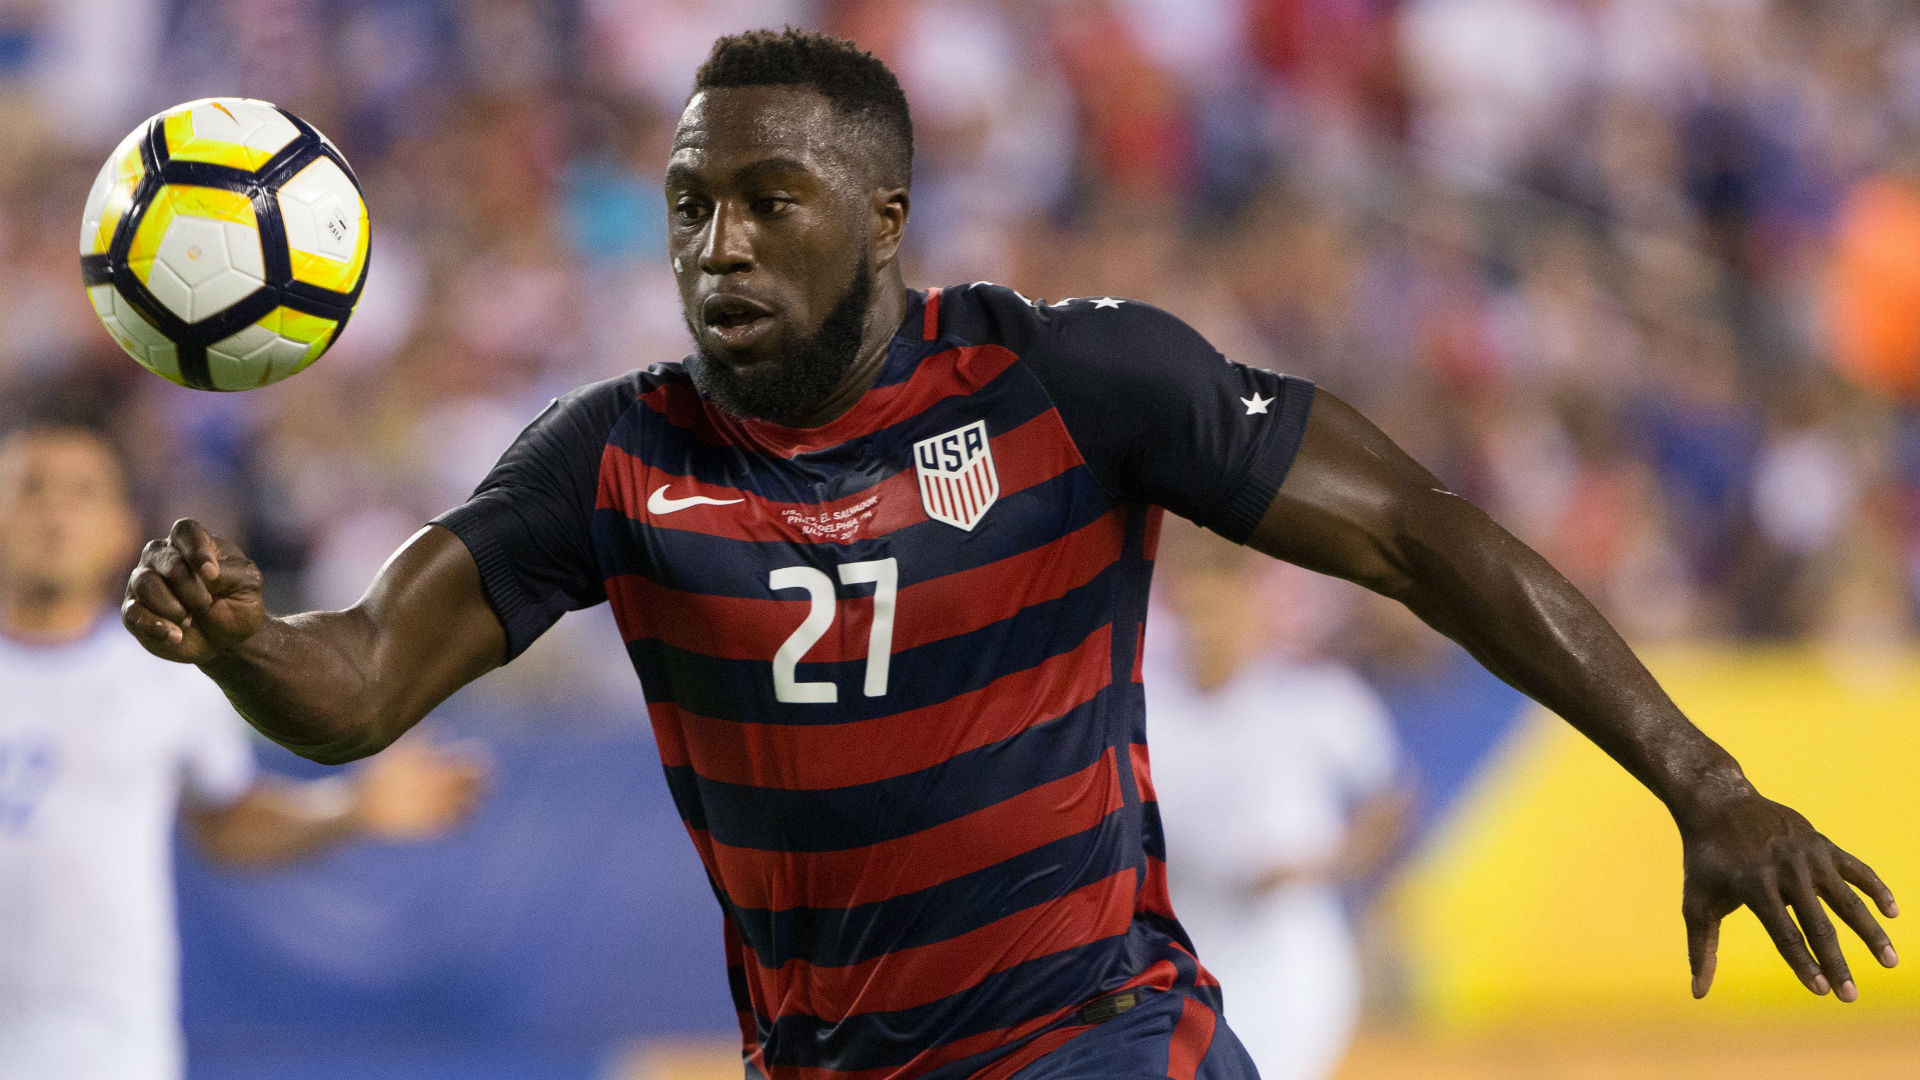 USA's Jozy Altidore gets nipple-crippled AND bitten in the Gold Cup